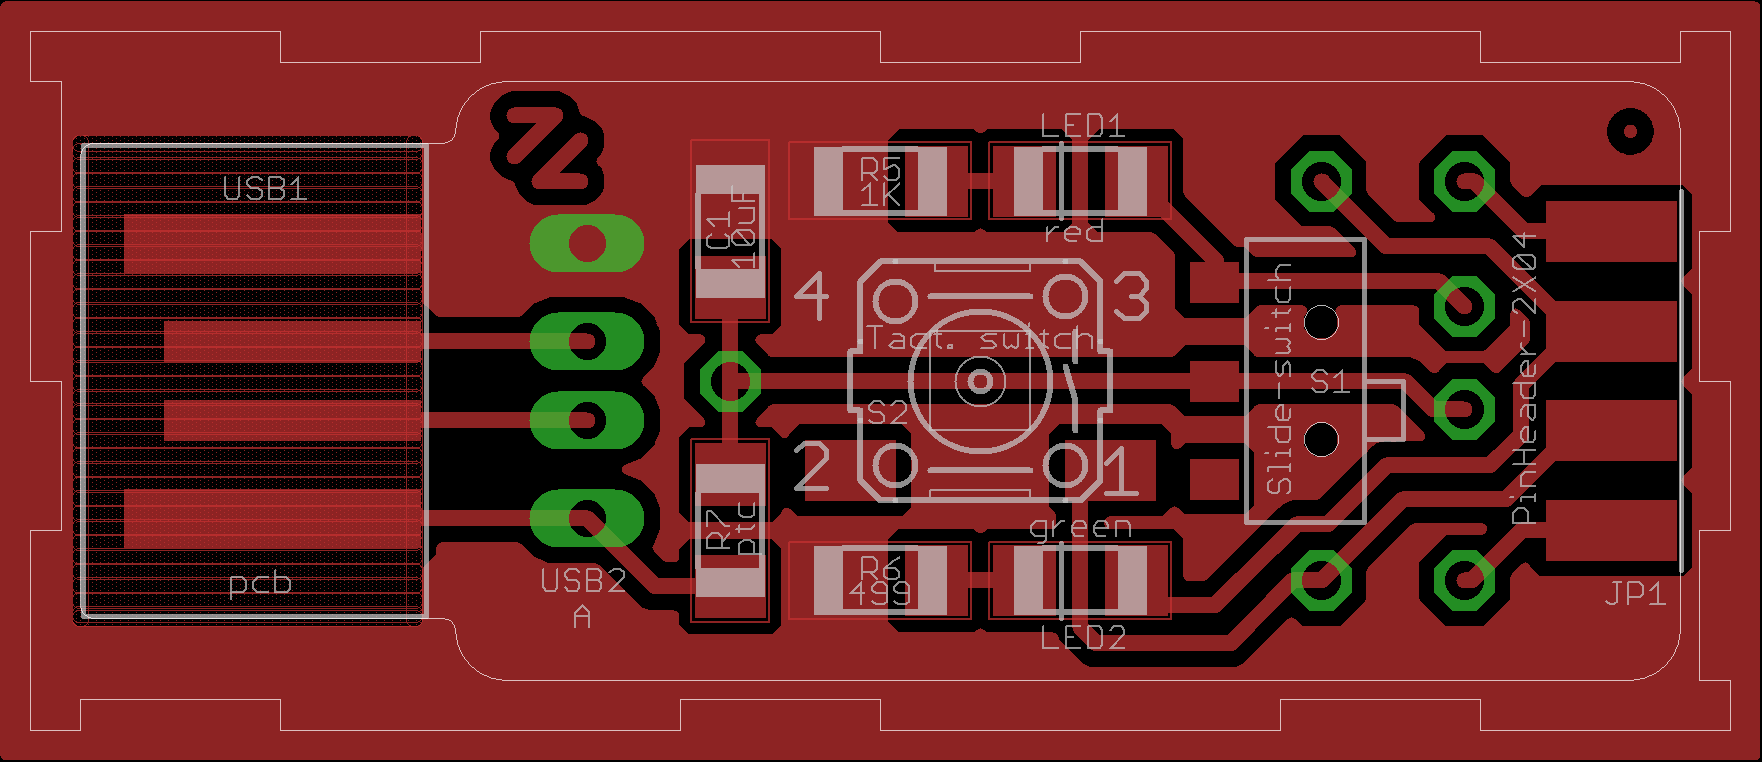 Fabtinystar Design Notes Pcb Spacer Support M4 Corner Edge Holding Circuit Board Dont Line Up And The Becomes Perfectly Placed For Milling Other Side Images In Tarball Are Labeled M1 Indicating